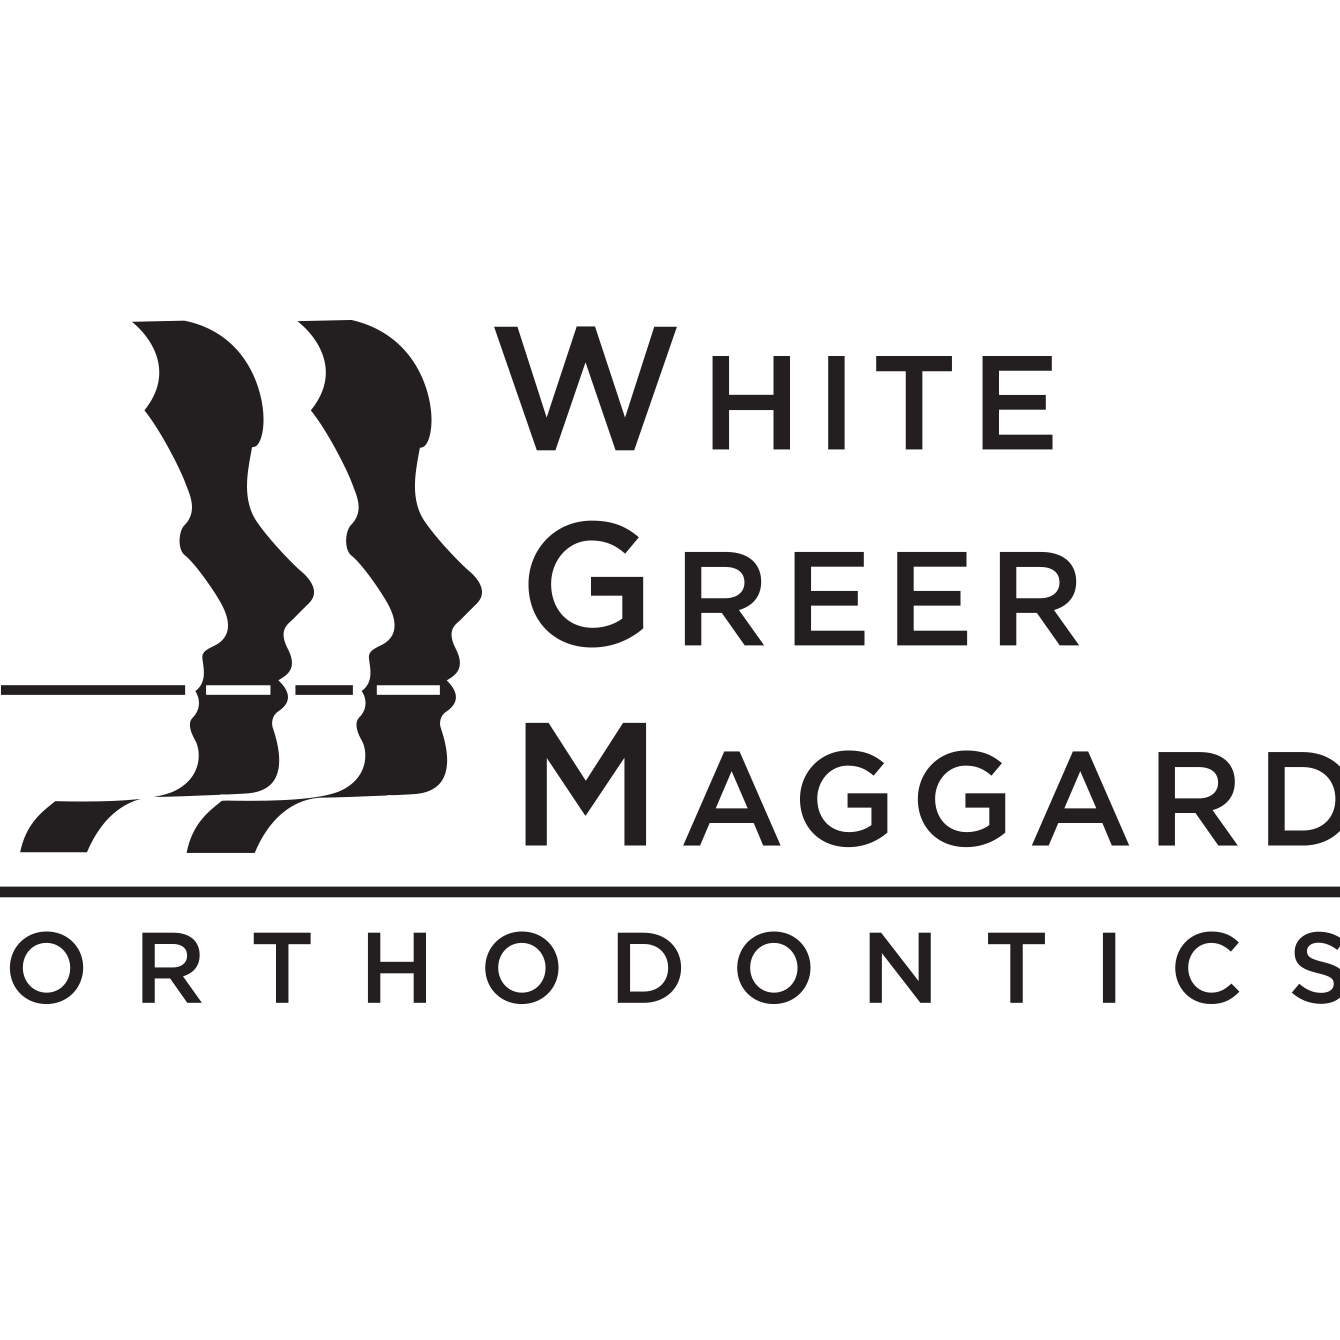 Dr. James Greer - White, Greer & Maggard Orthodontics